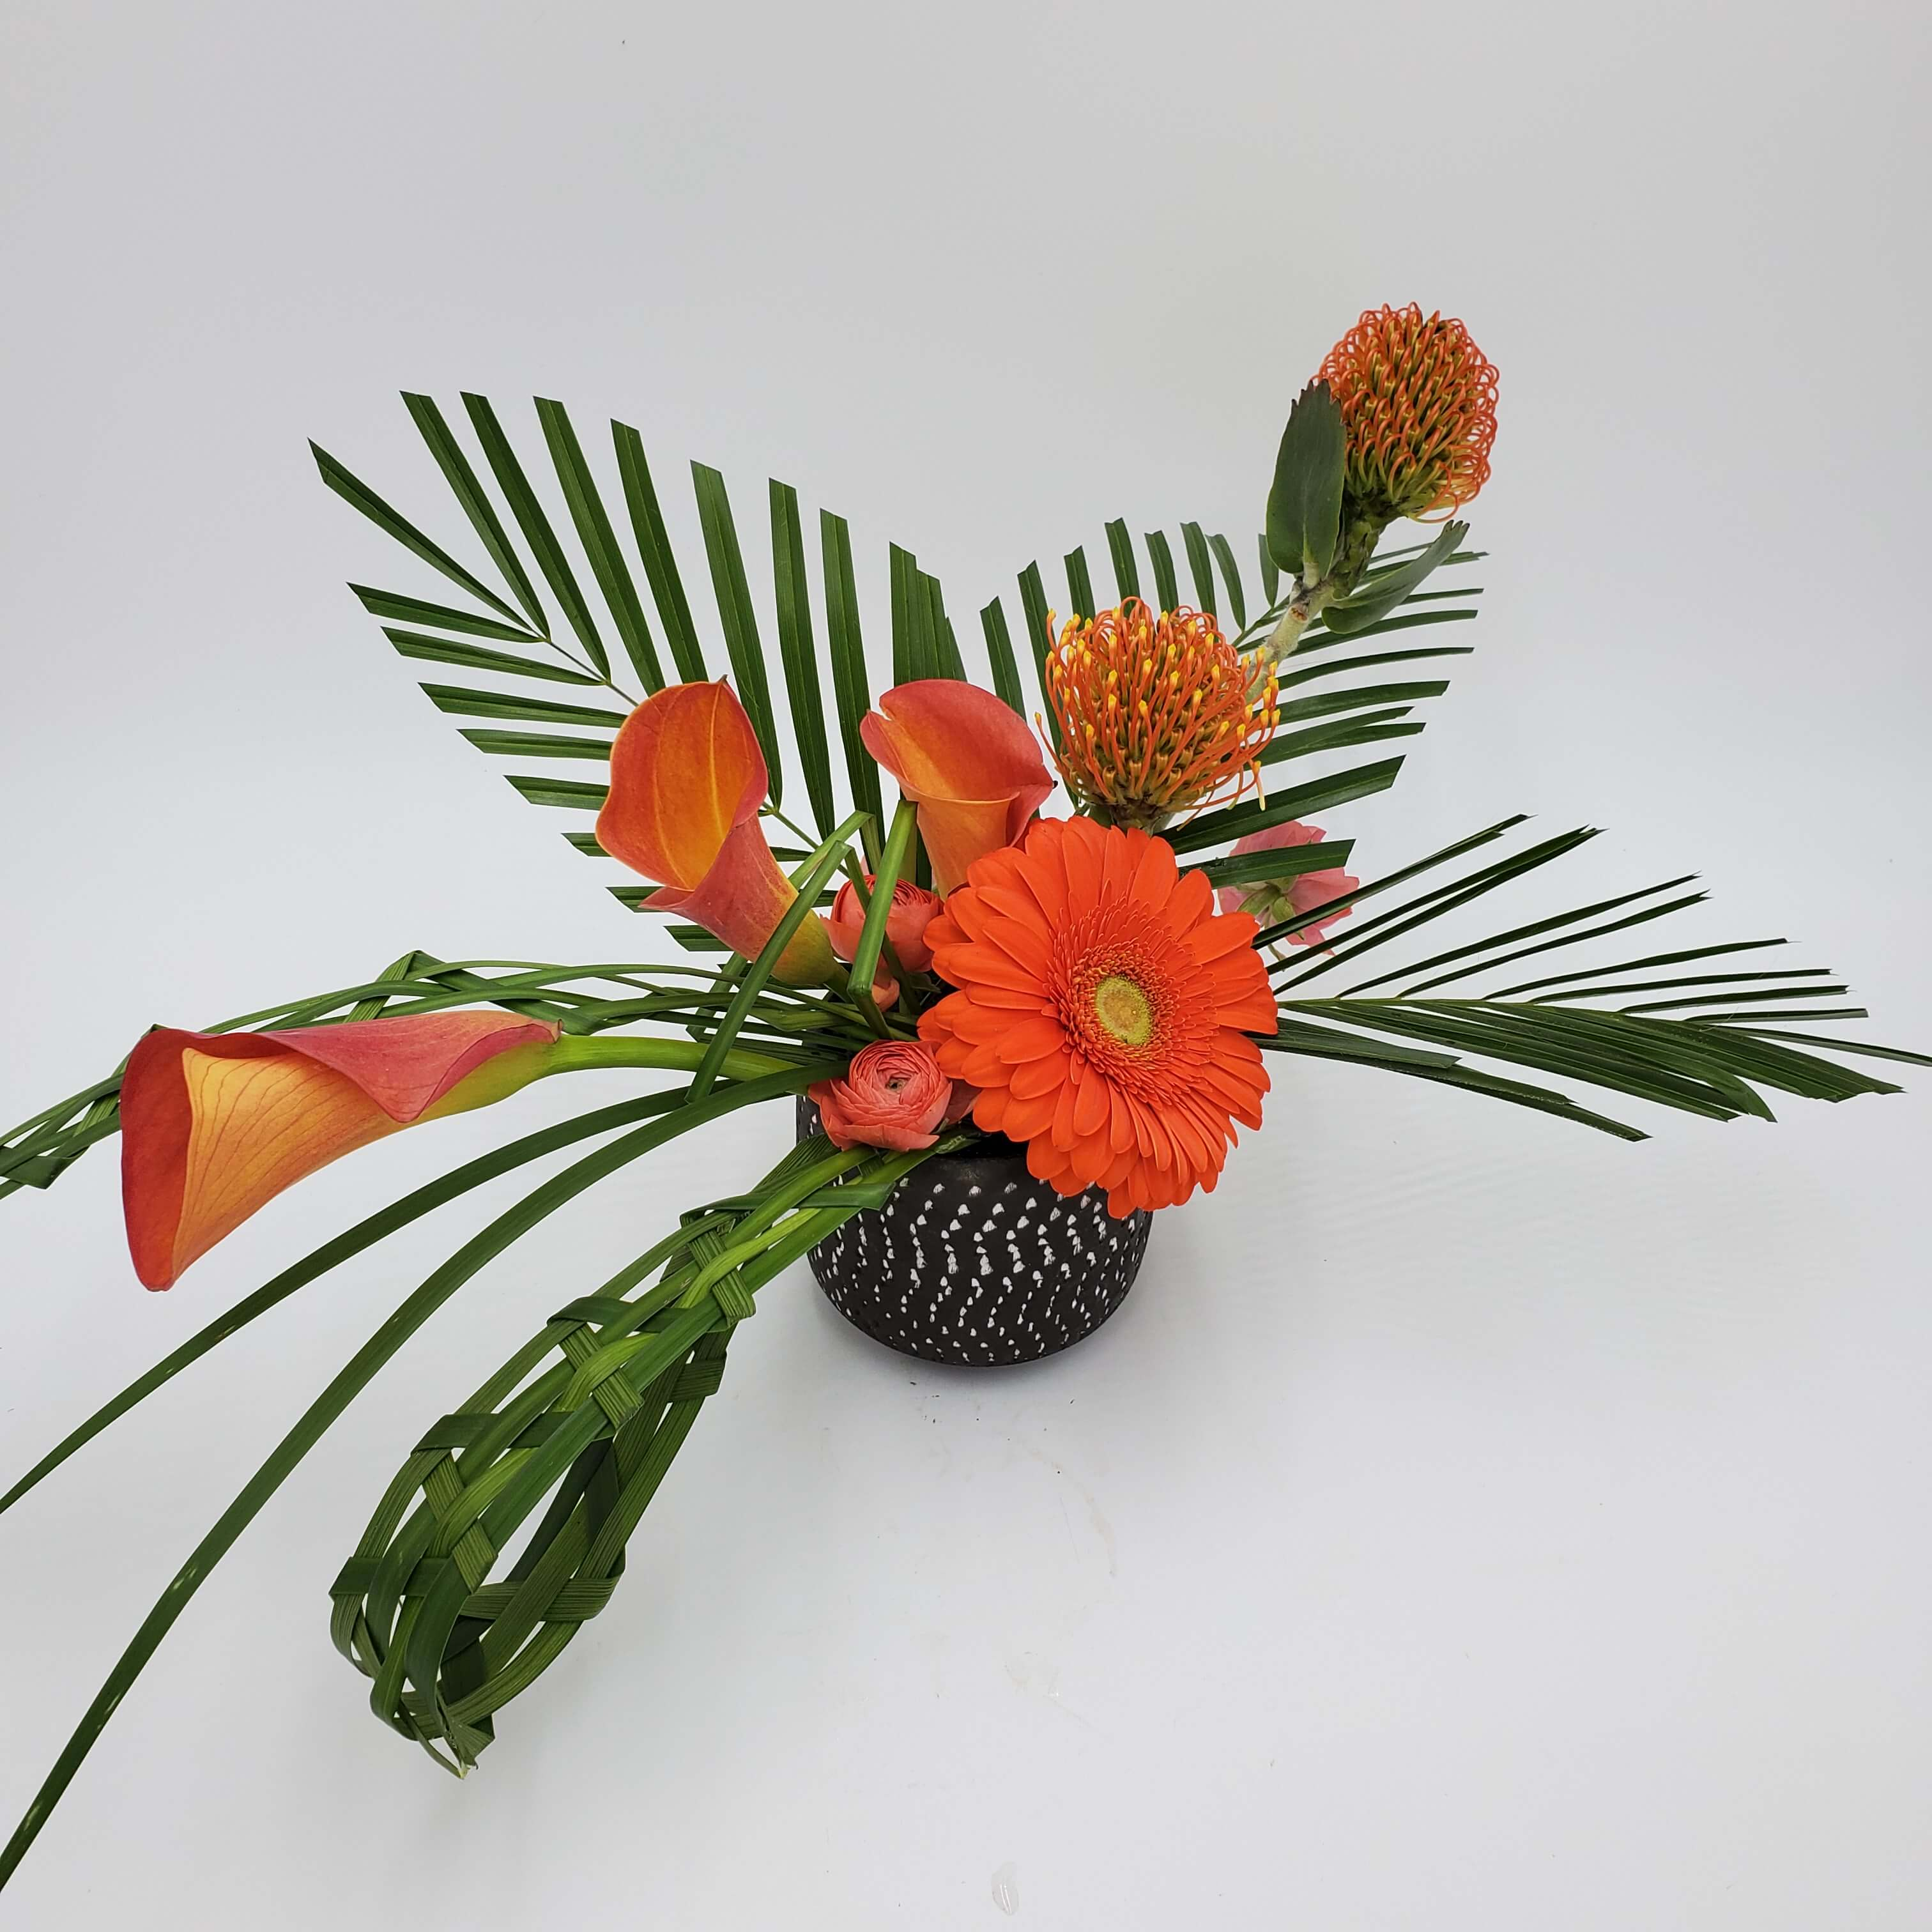 Artistic orange floral design